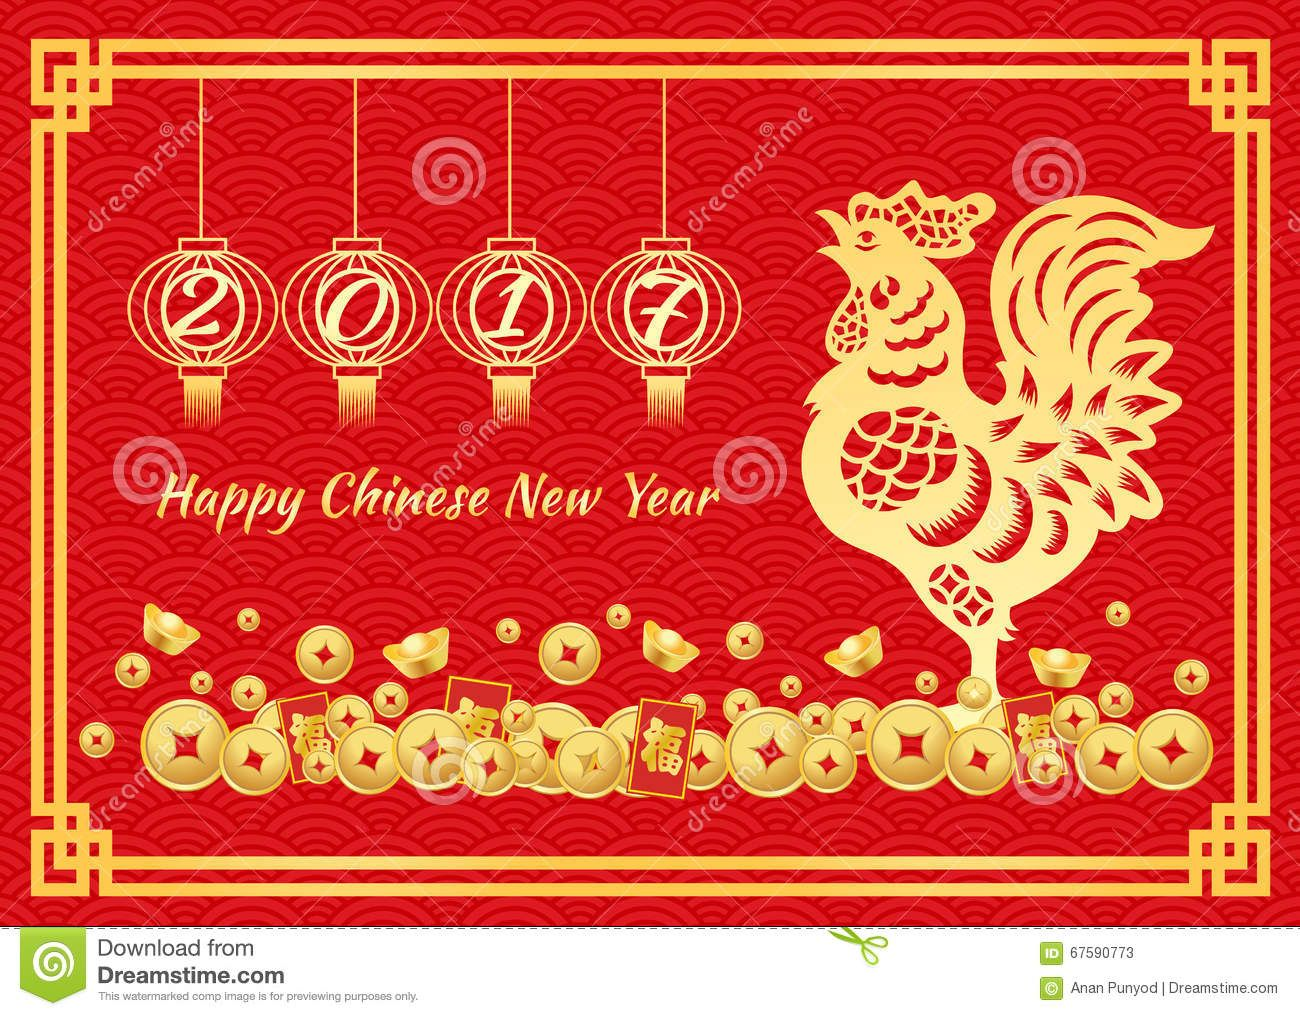 Happy Chinese New Year 2017 Card Is Number Of Year In Lanterns